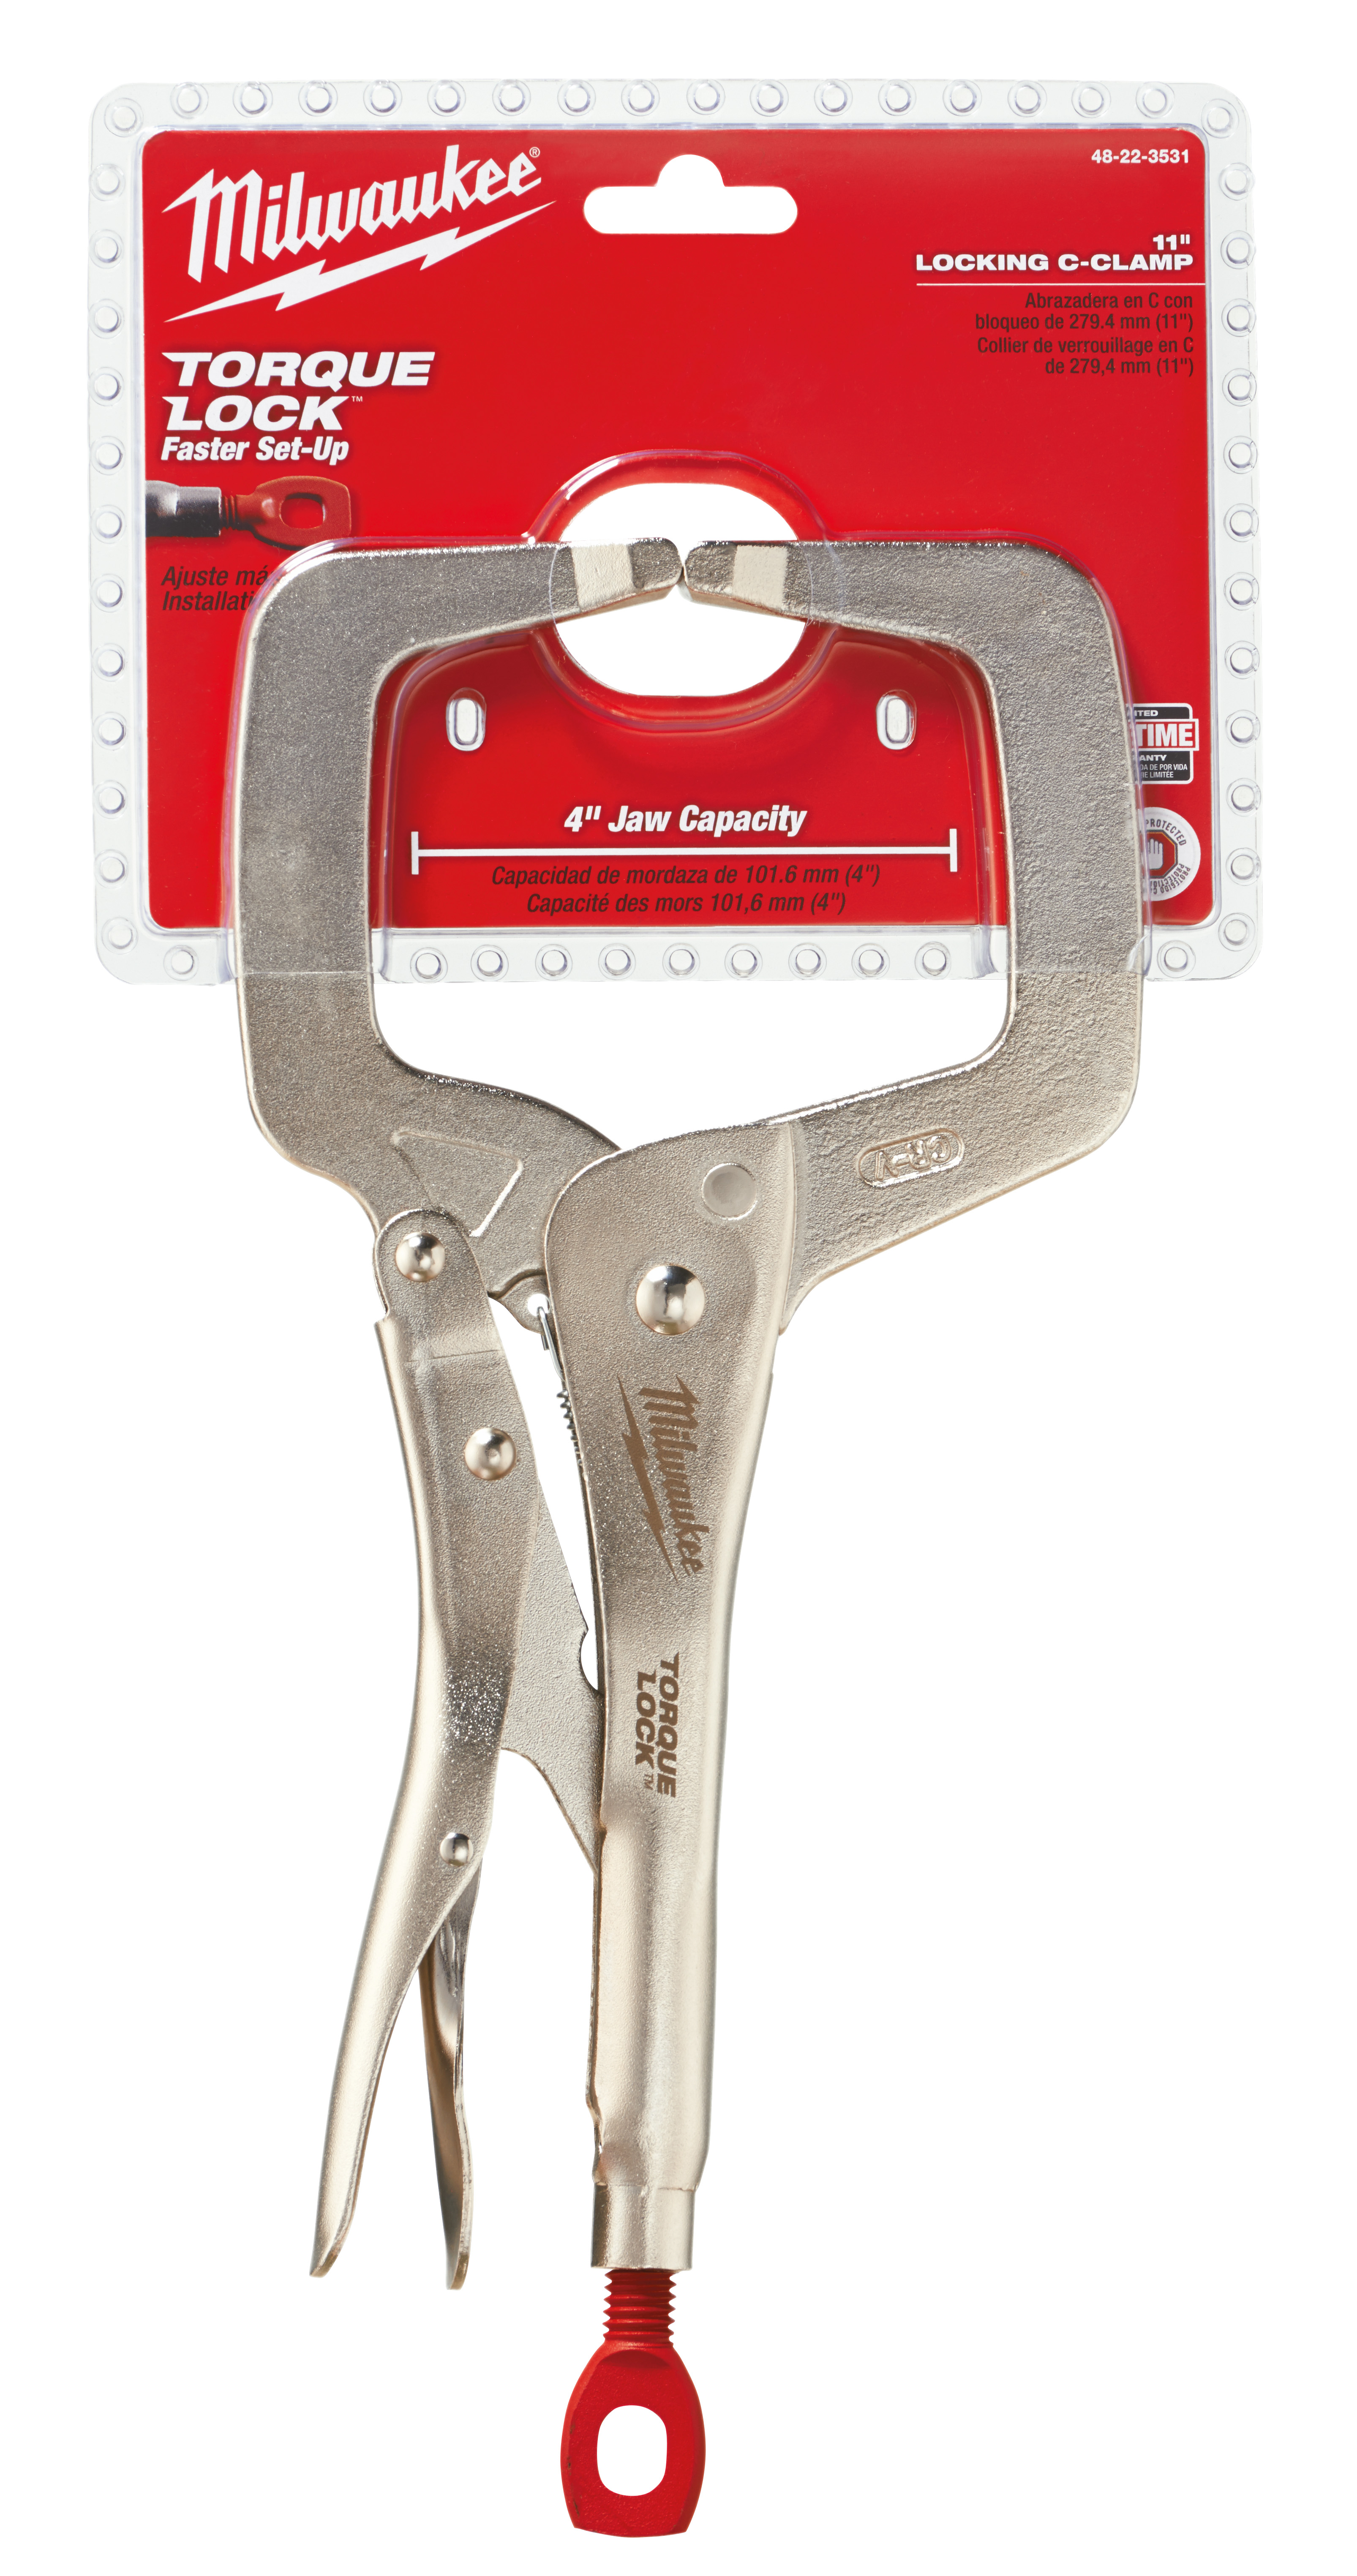 Milwaukee® TORQUE LOCK™ 48-22-3531 Regular Jaw Locking C-Clamp, Polished Chrome, 4 in D Throat, 1/2 in Jaw Opening, 11 in Jaw, Forged Alloy Steel